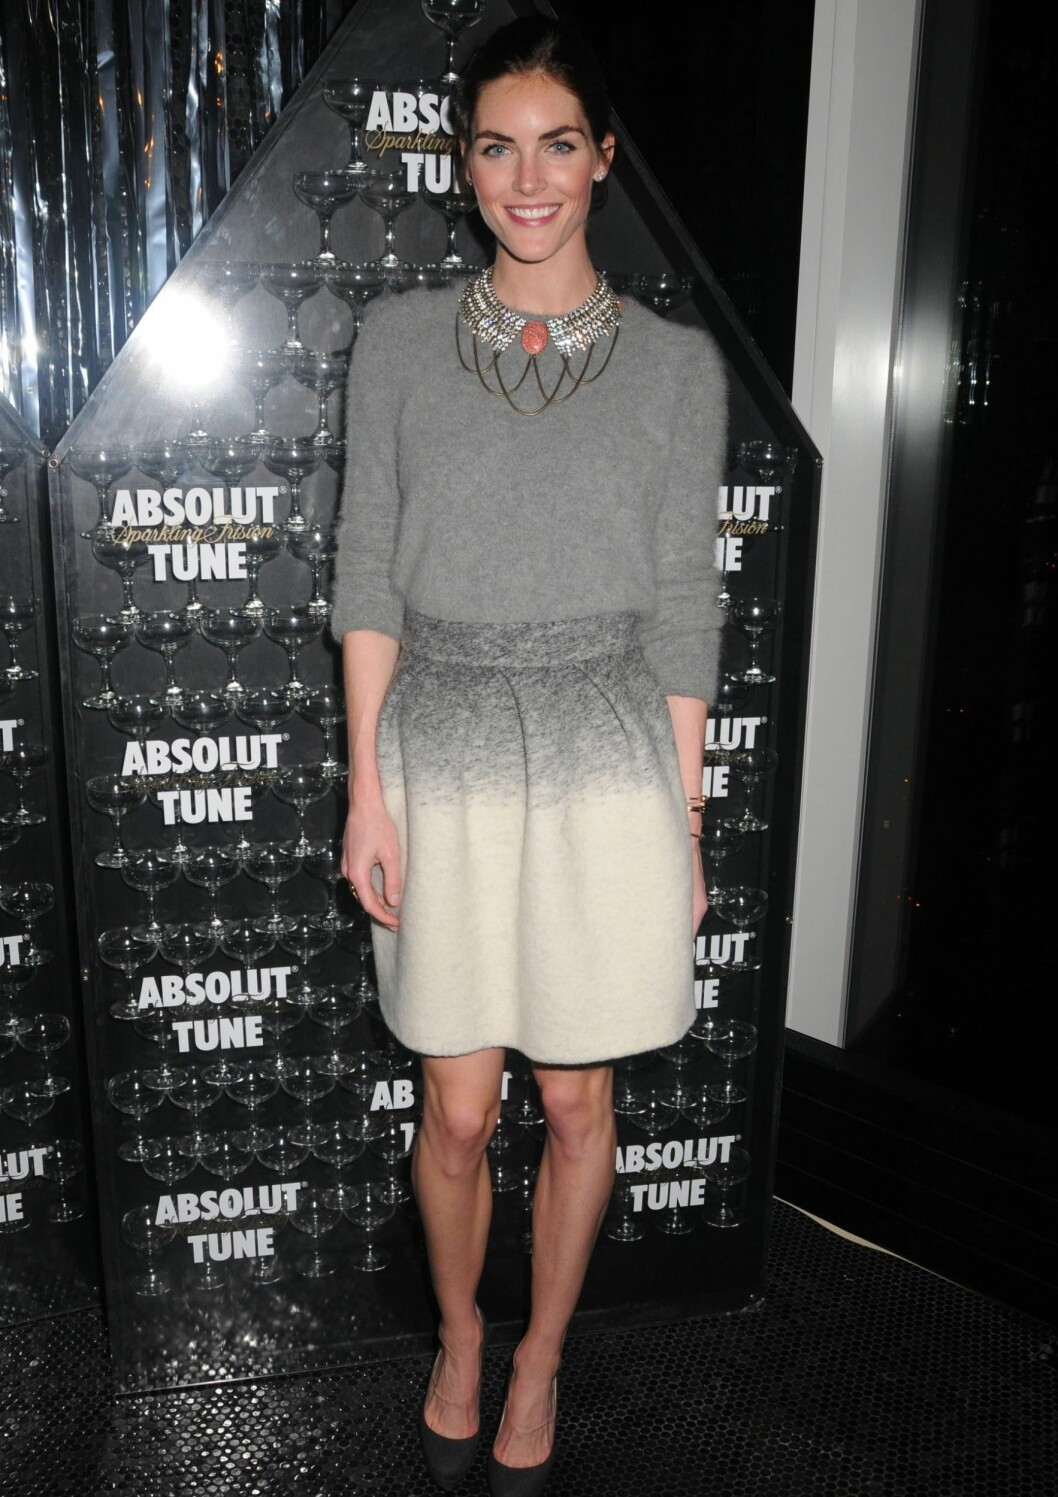 Hilary Rhoda Foto: All Over Press